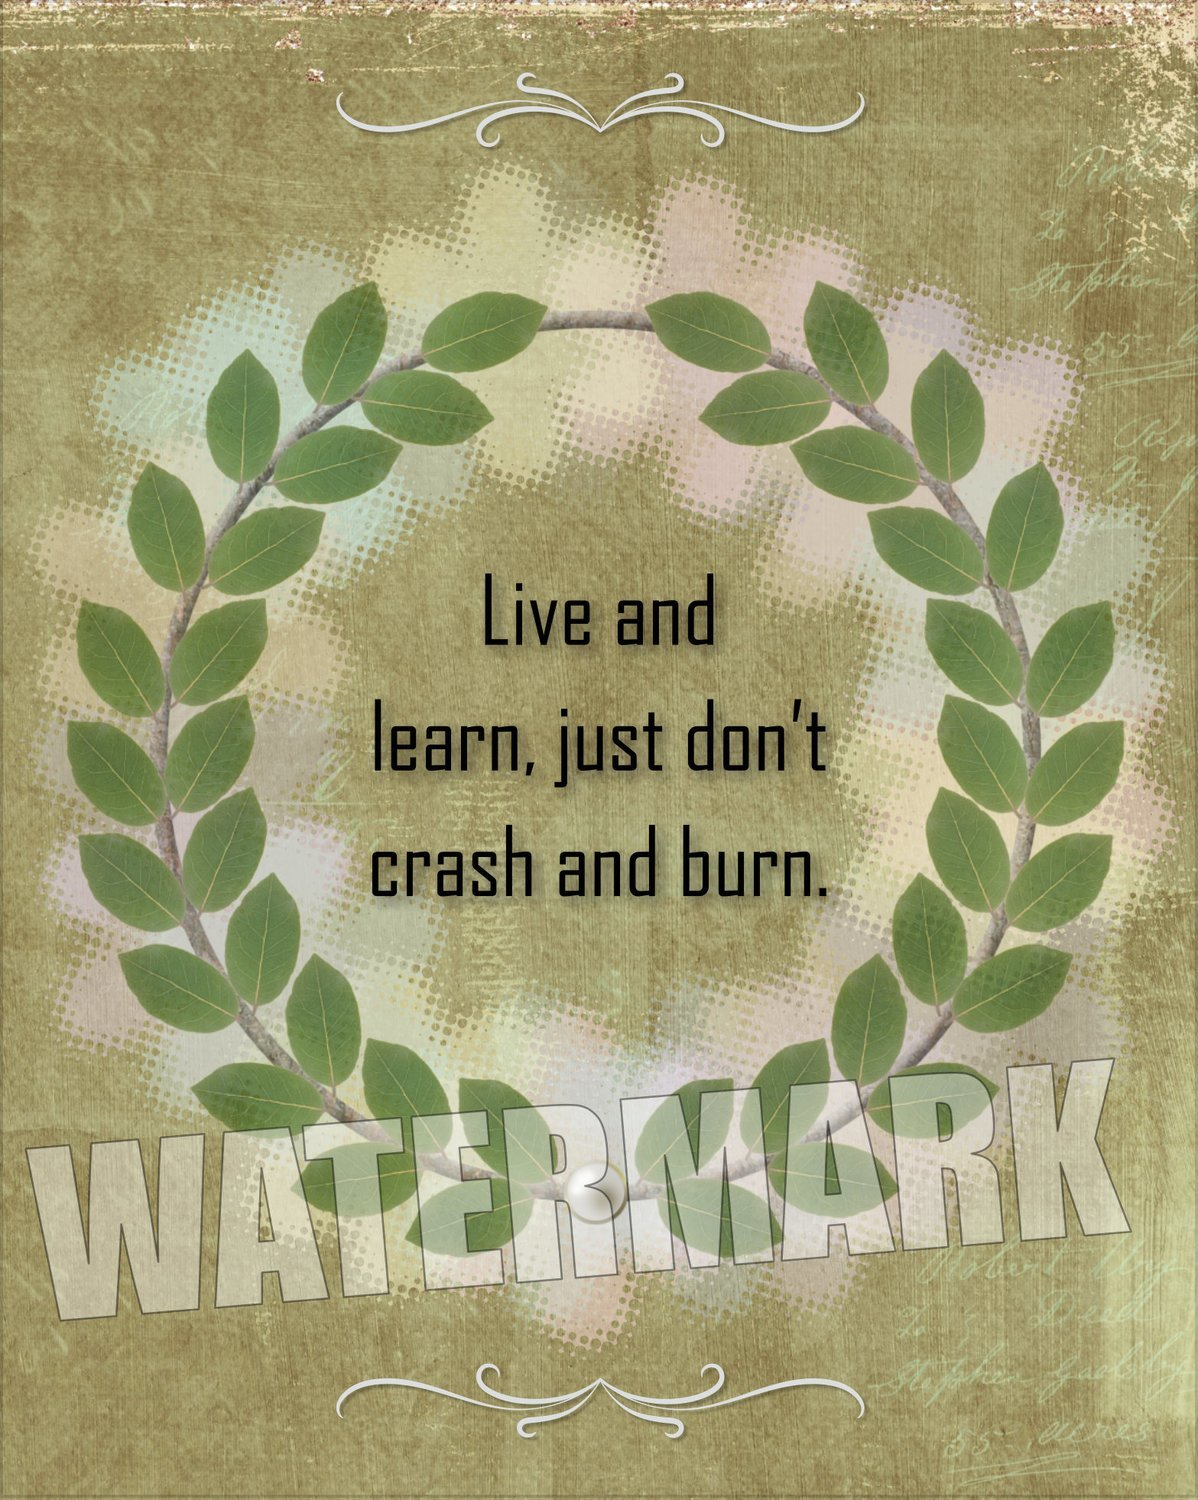 Live & learn, just don't crash a burn… Quote Message Instant Digital Download Print Wall Decor Graphic Art Printable Home Office DIY